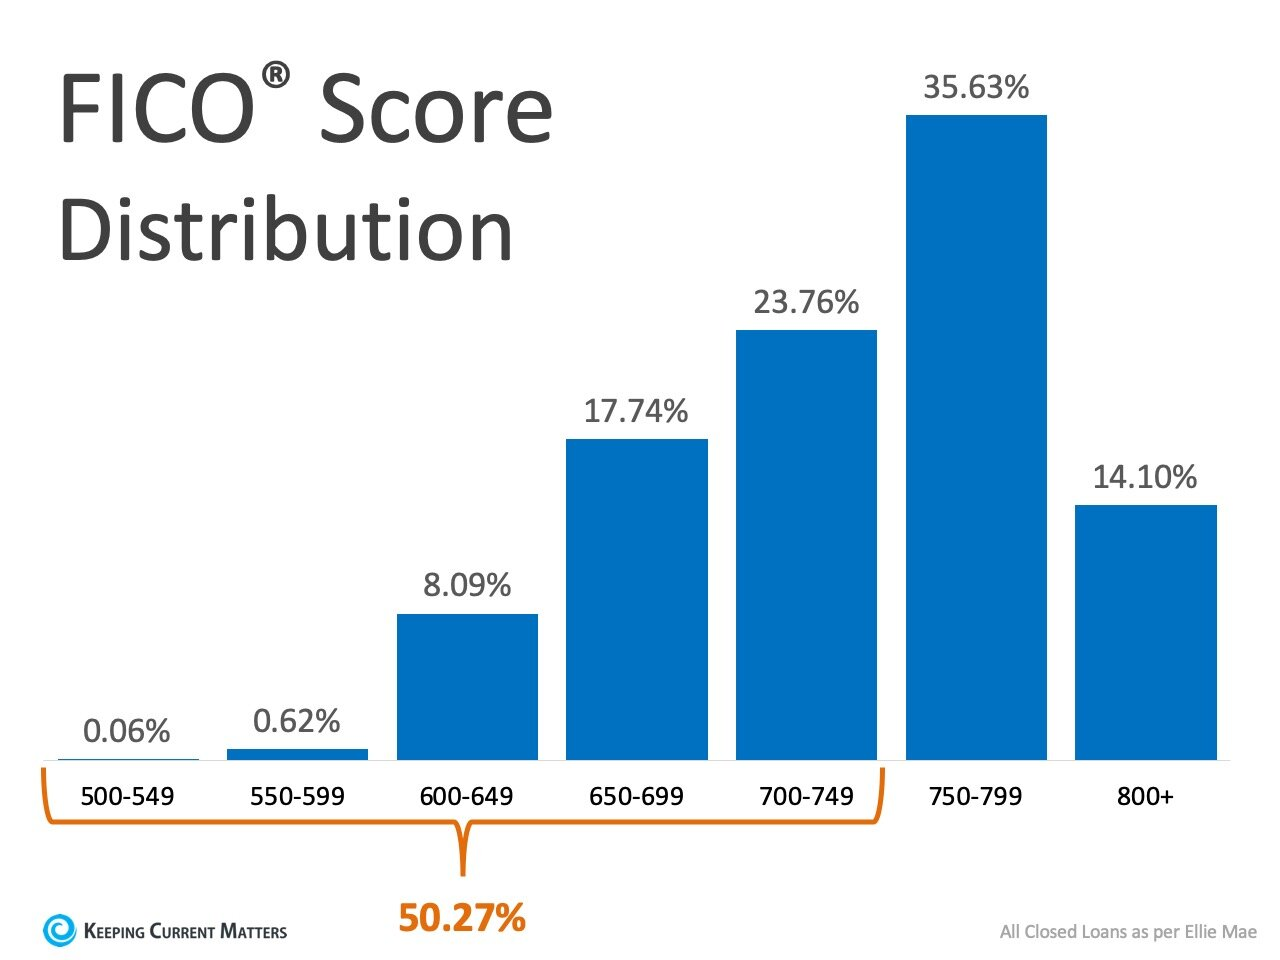 Kate_Spad_Blog_Fico_Score_Distribution.jpg